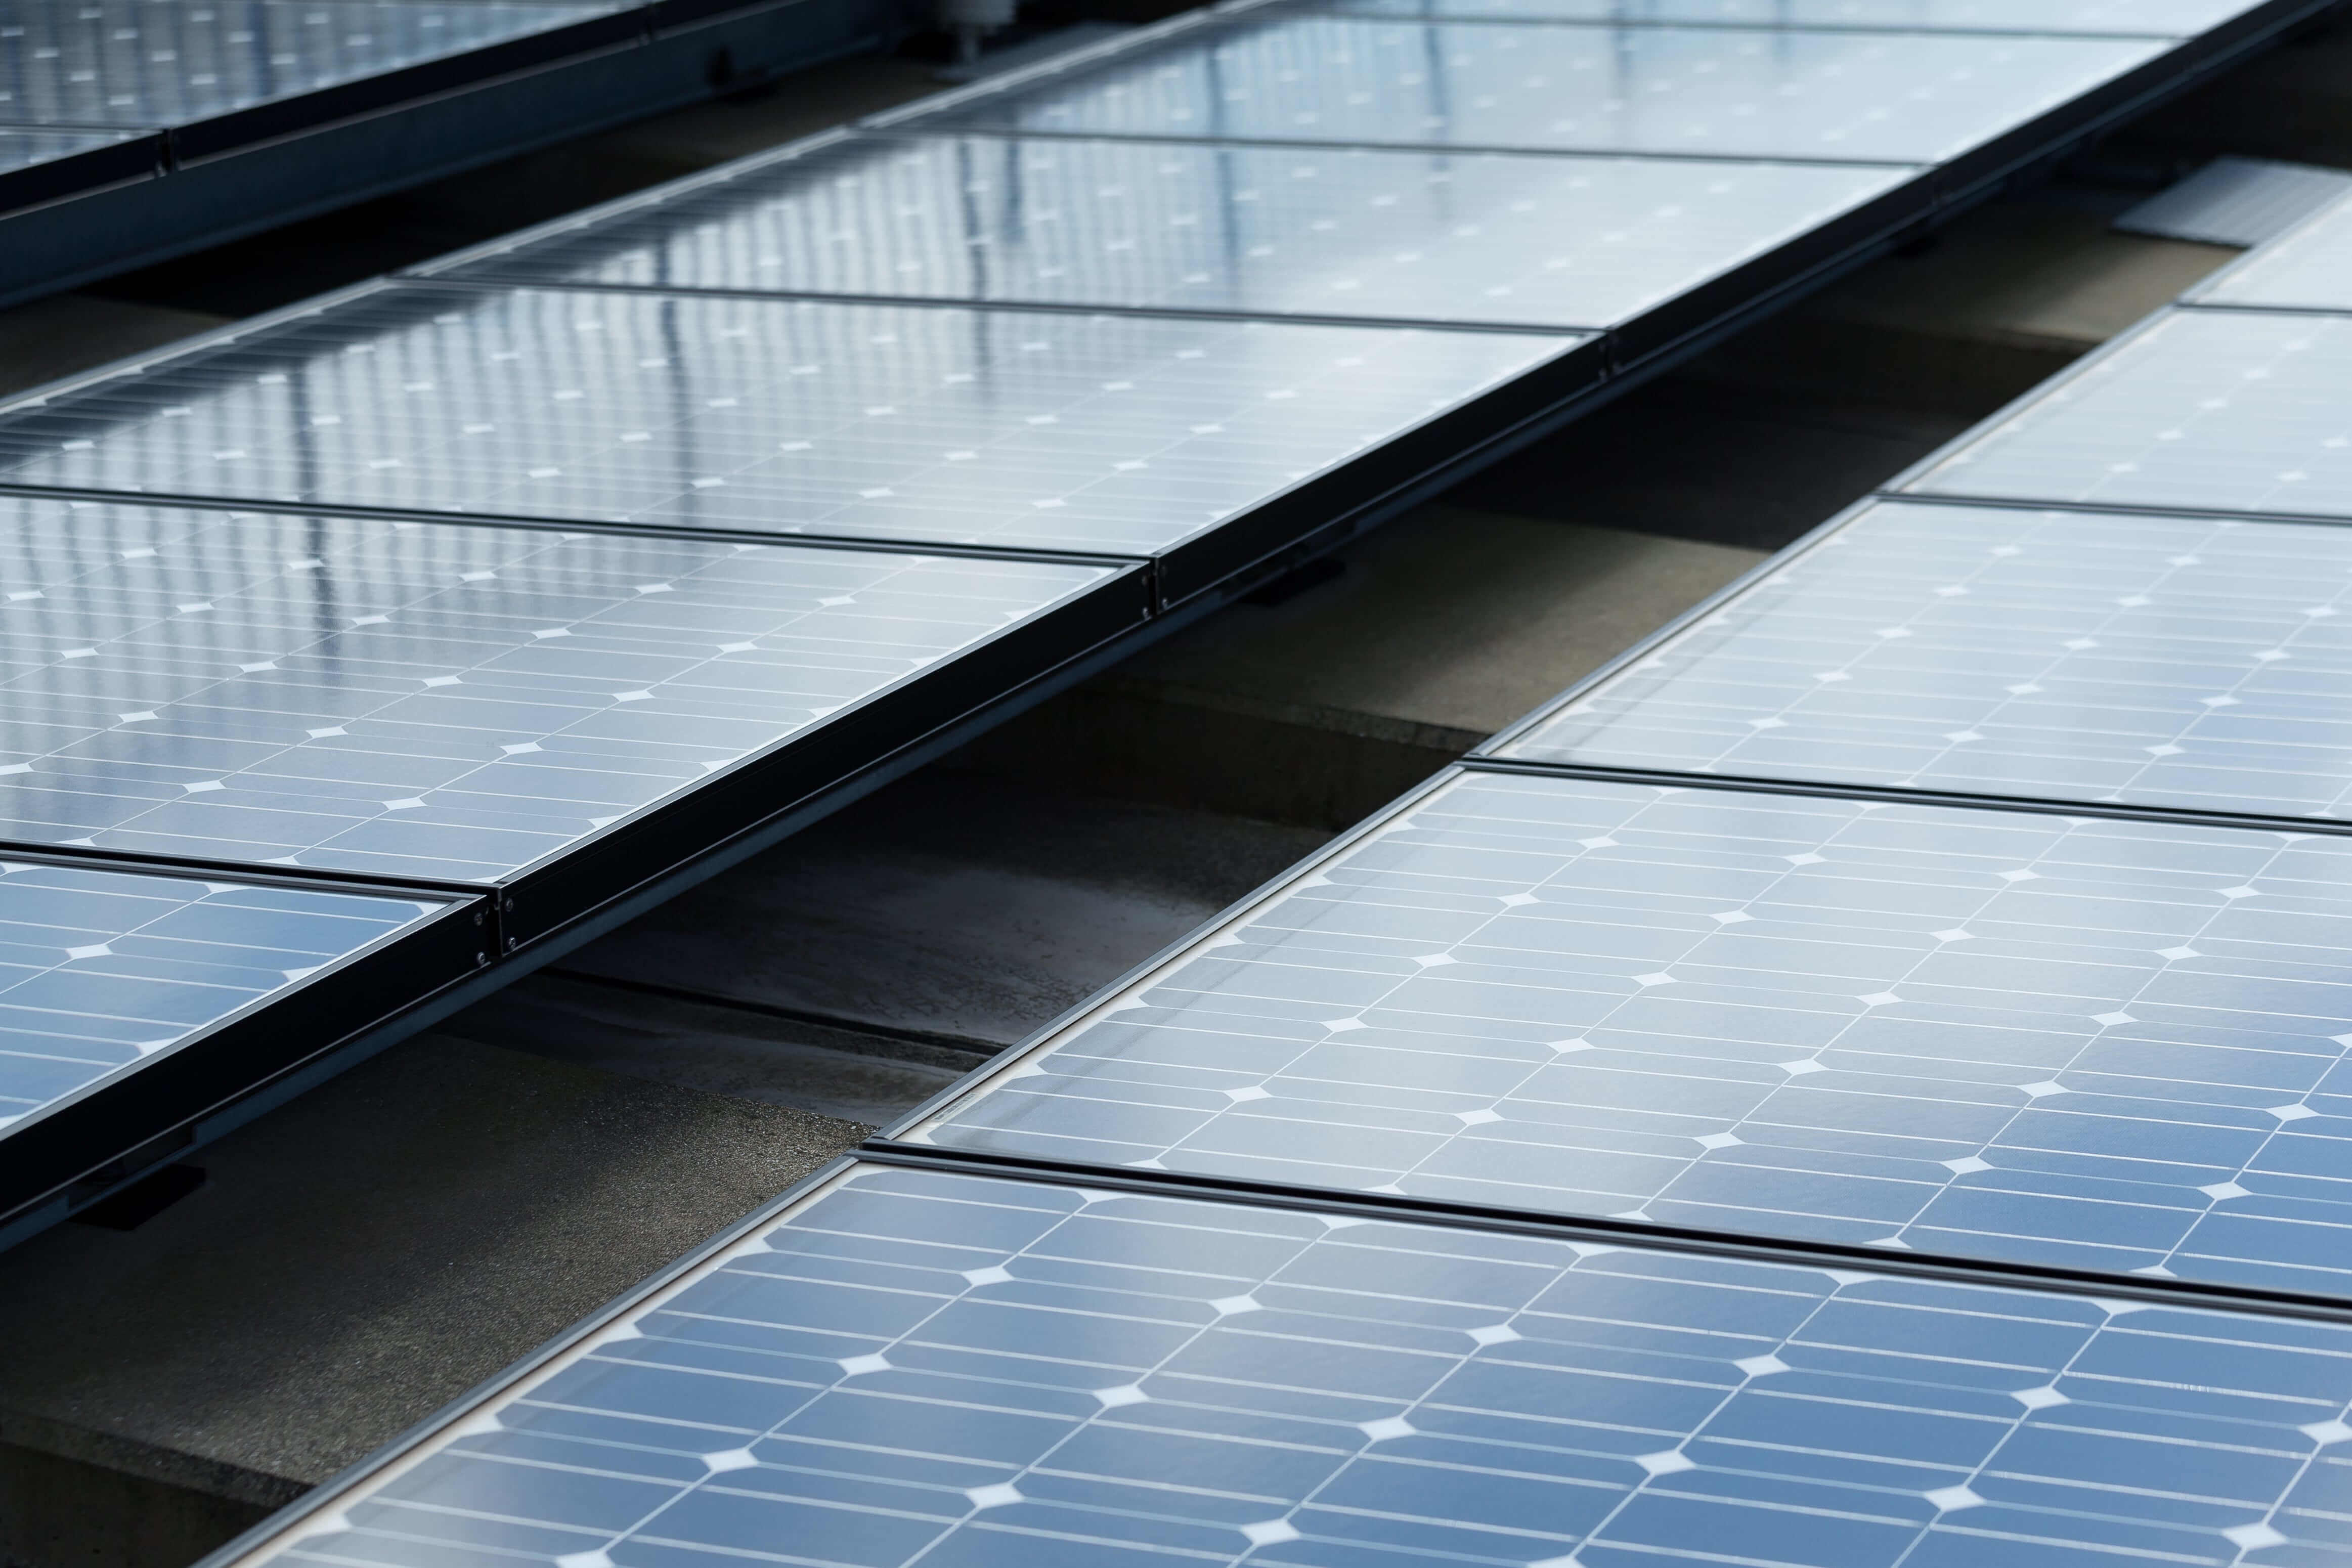 2021 means for the solar industry